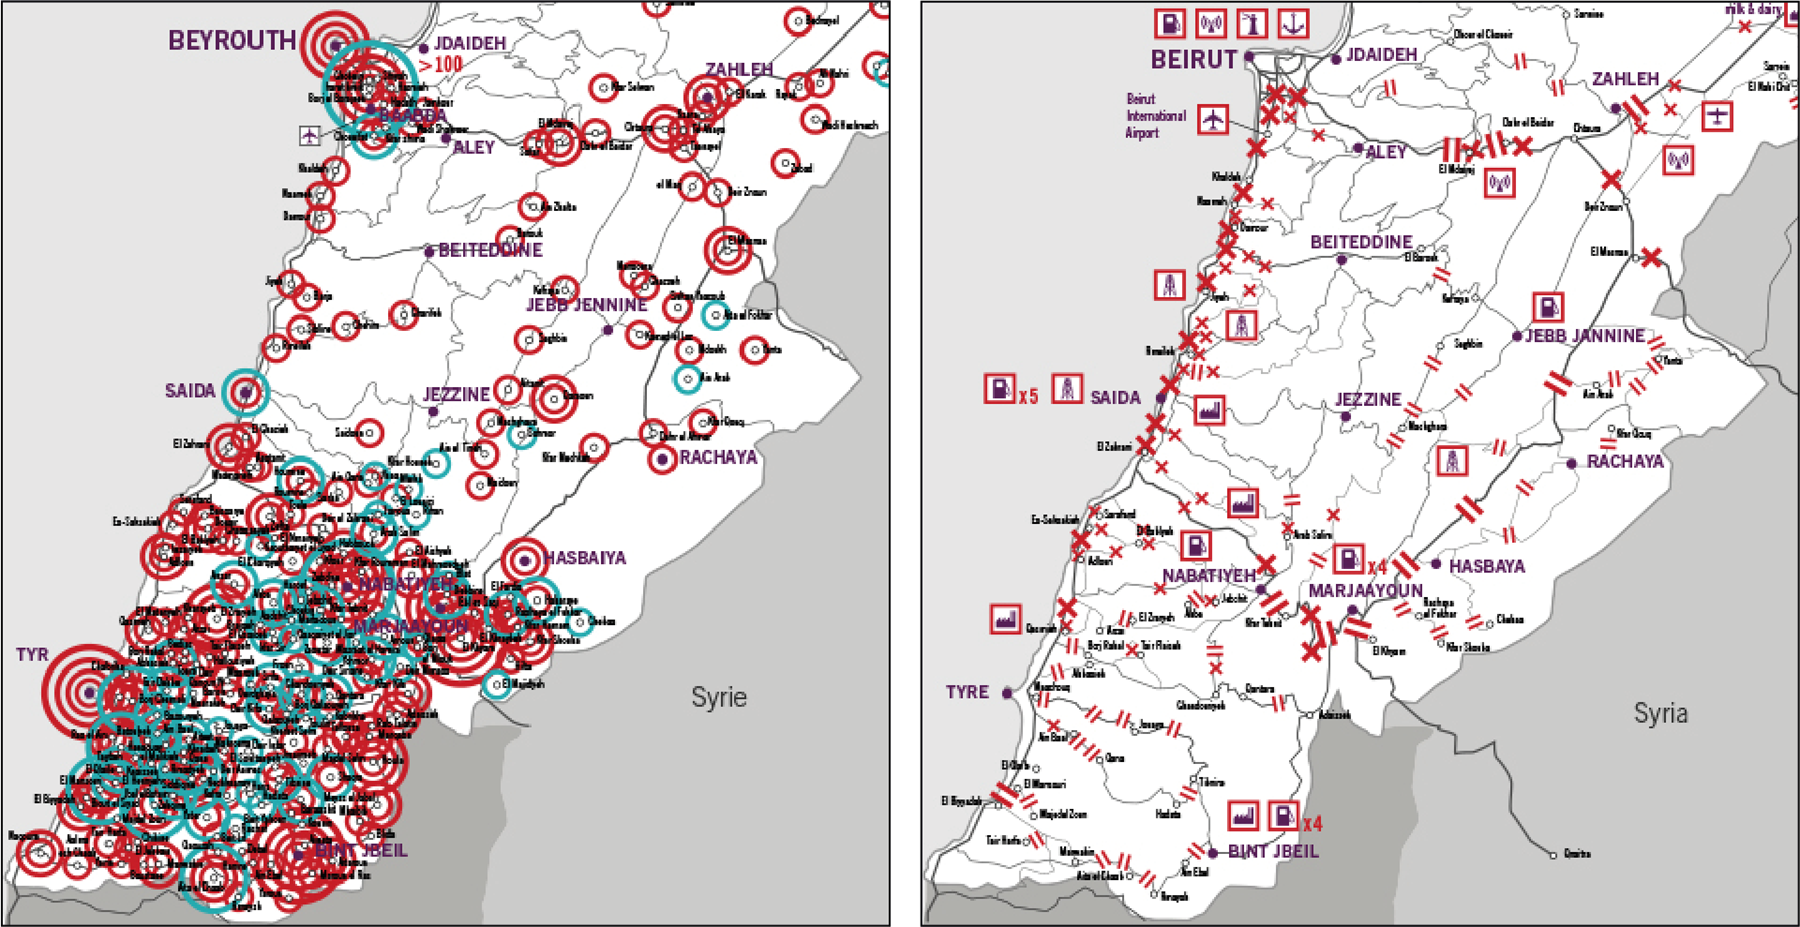 Solidarity Maps: Israeli Assault on Lebanon, Samidoun Media Team, 2006, Map design: Ahmad Gharbieh and Zeina Maasri.